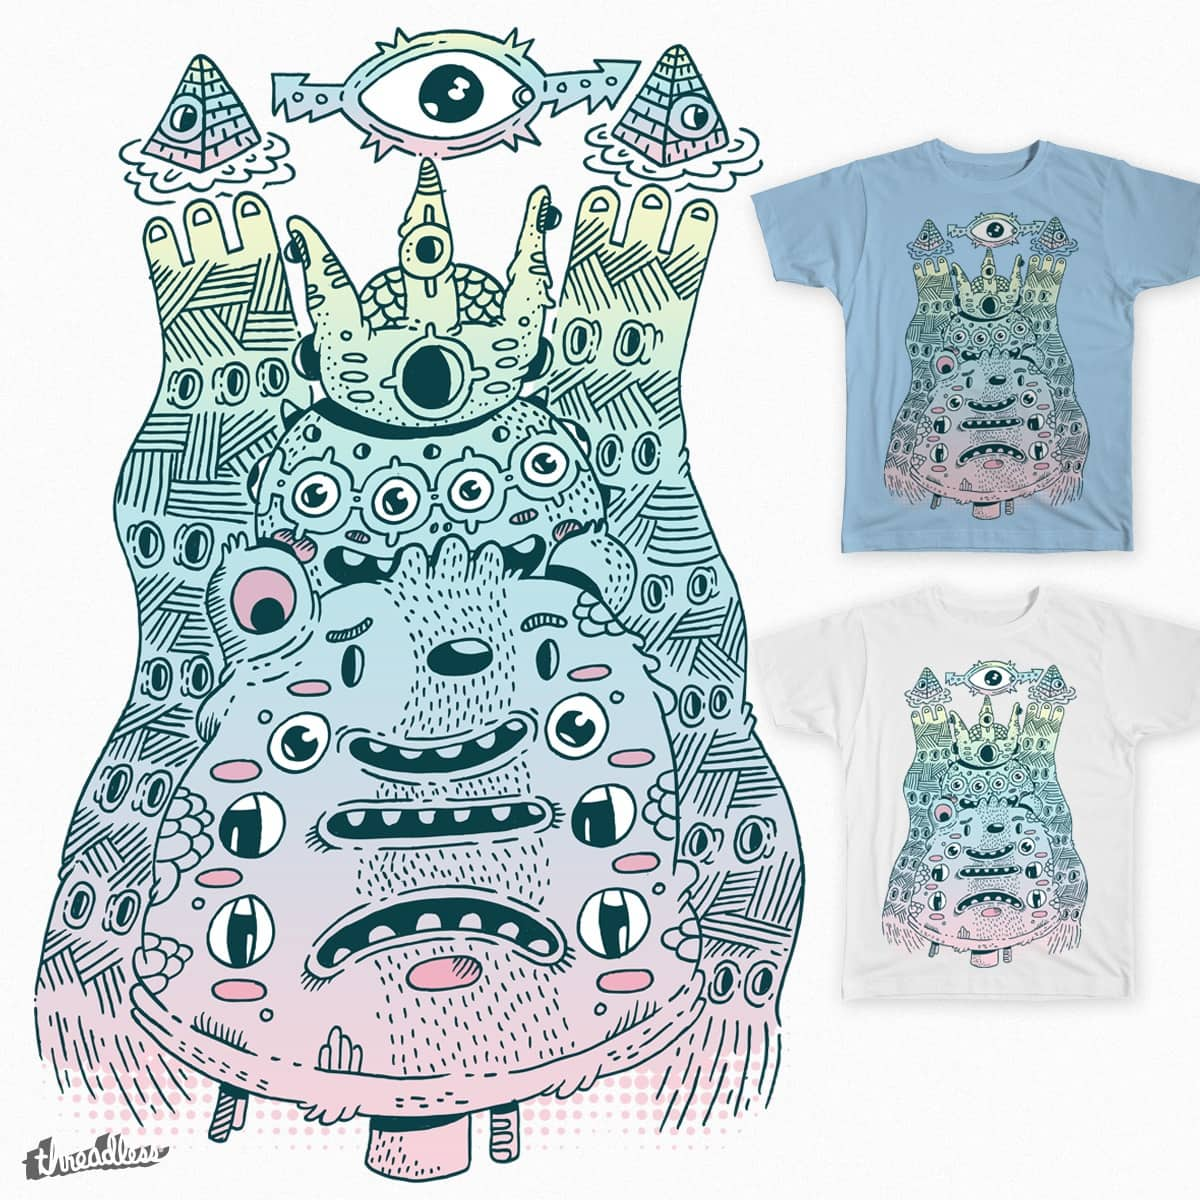 Eye of the Beholder by jean_warhol on Threadless